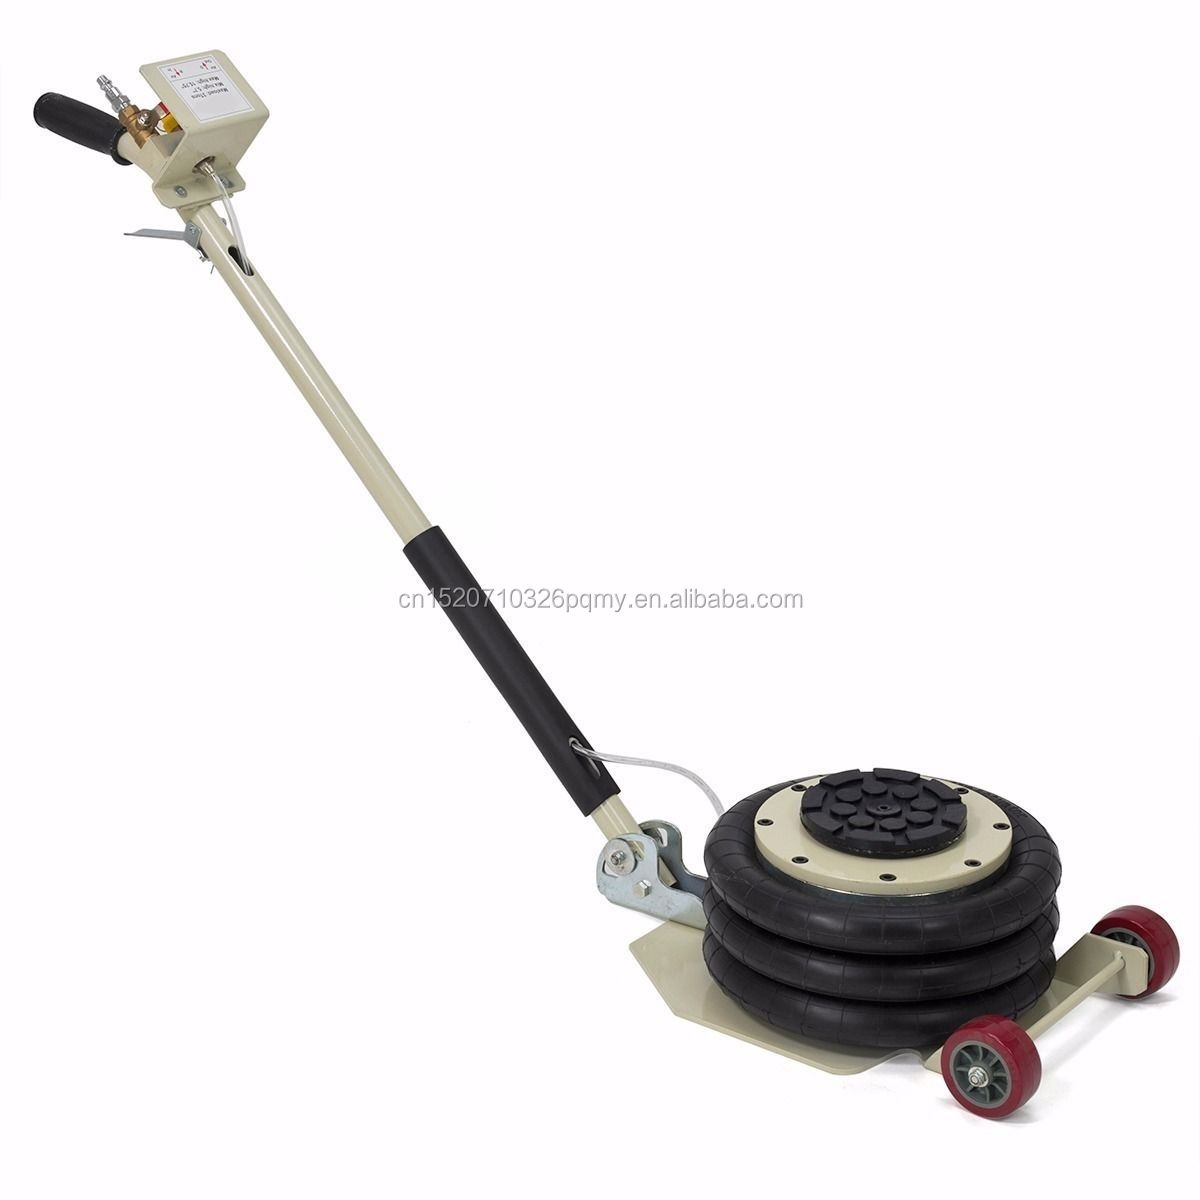 5 ton air lift air bag jack compressed air jack pneumatic jack